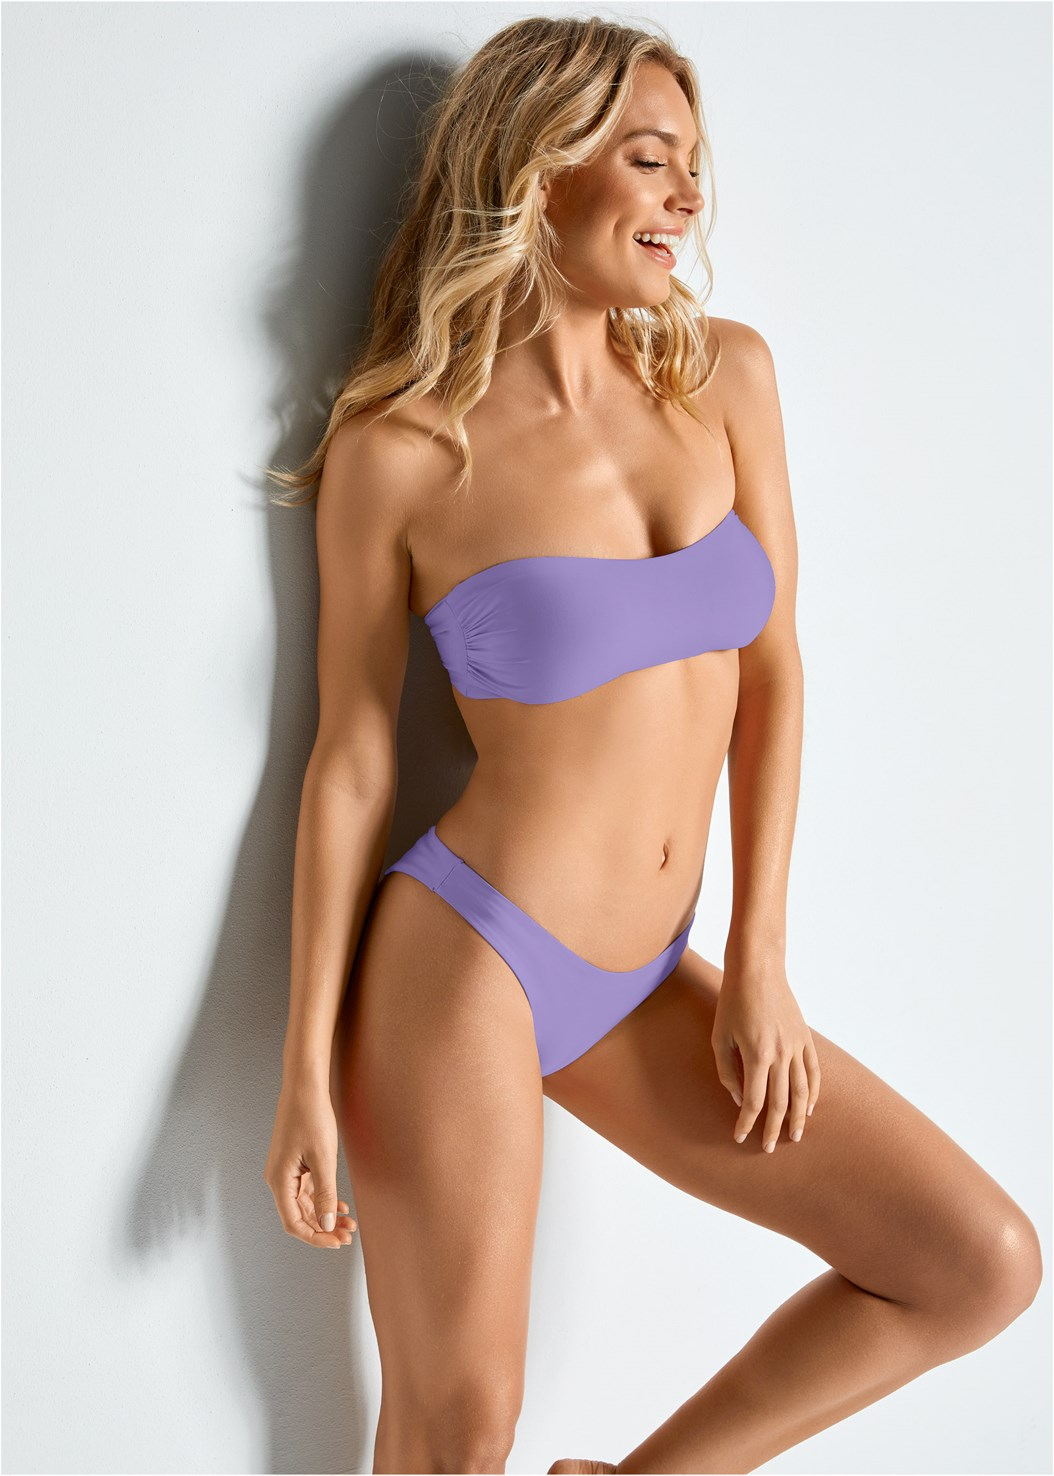 Versatility By Venus™  Reversible Bandeau Top,Versatility By Venus ™ Reversible High Cut Bottom